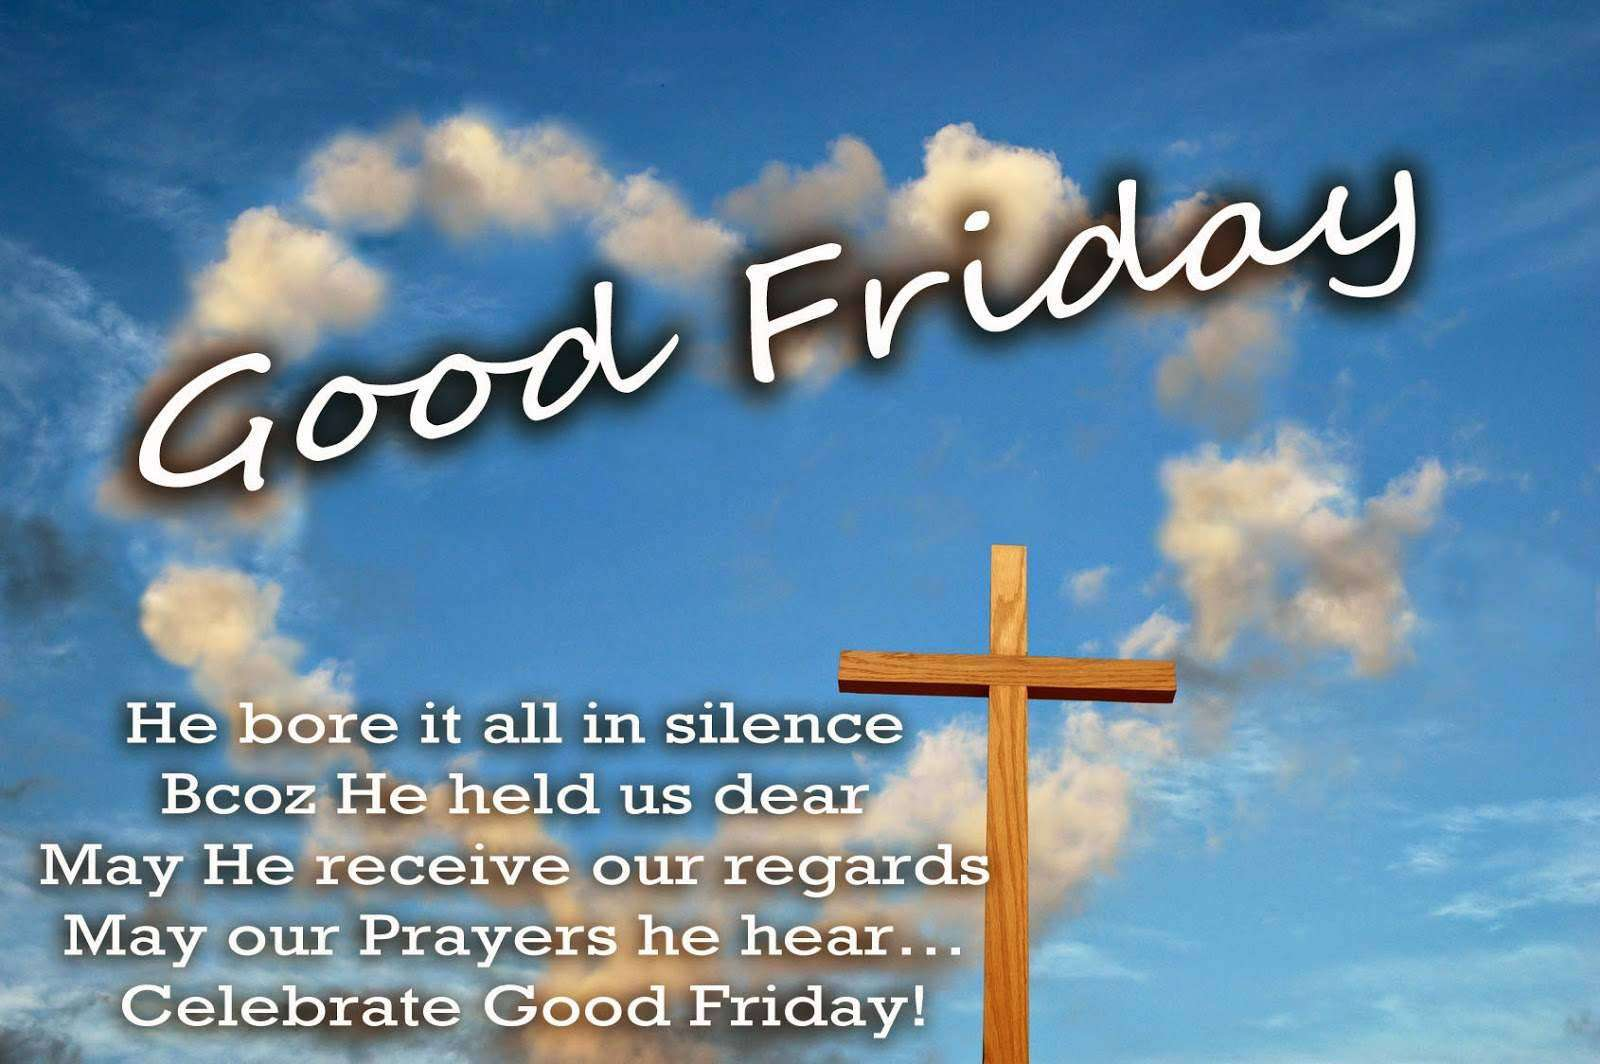 Good Friday Wishes Unique Image